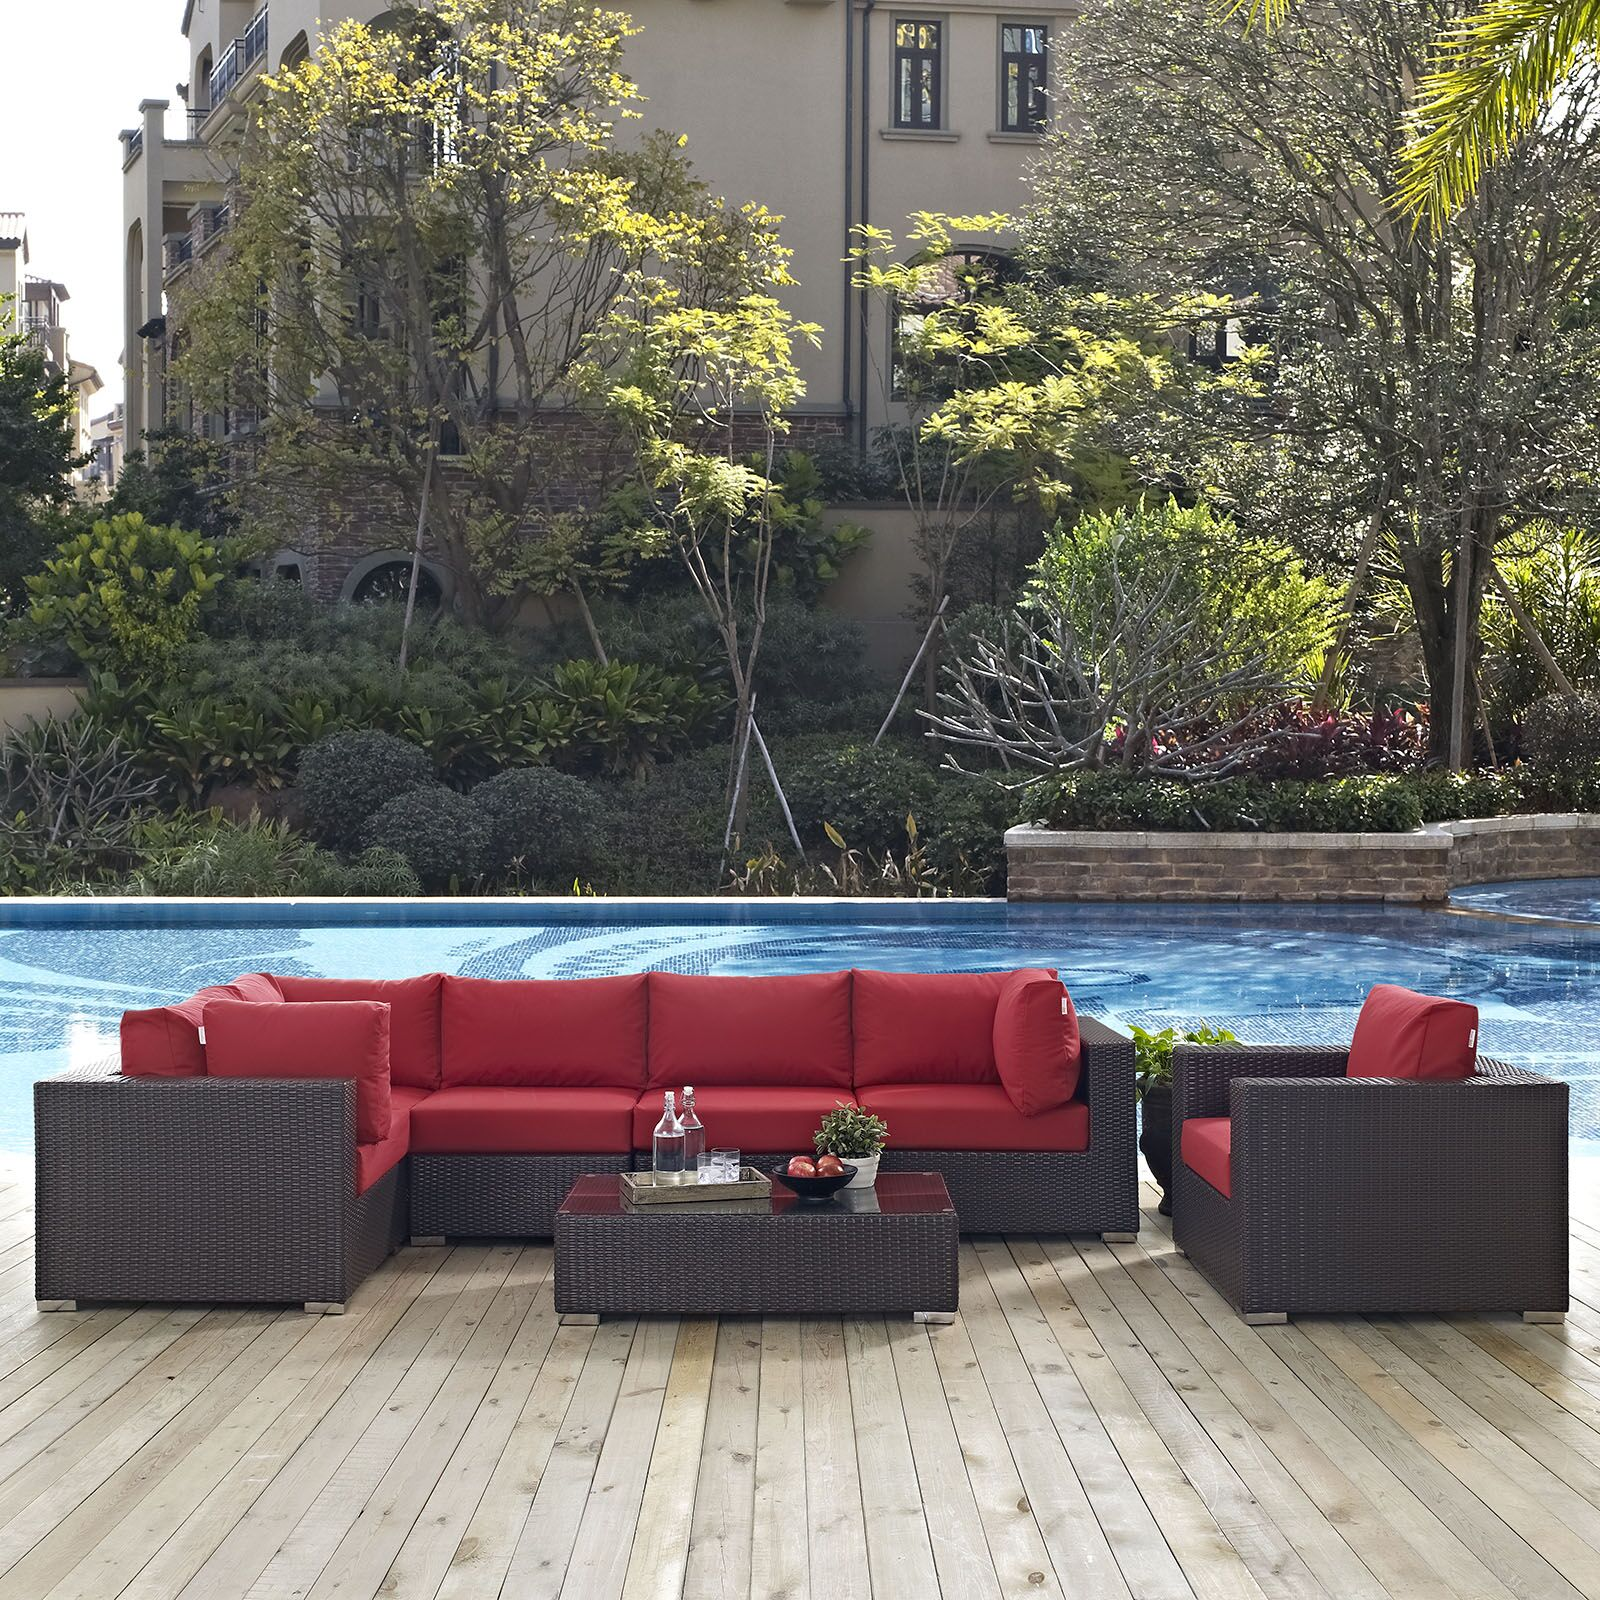 Ryele 7 Piece Rattan Sectional Set with Cushions Fabric: Red